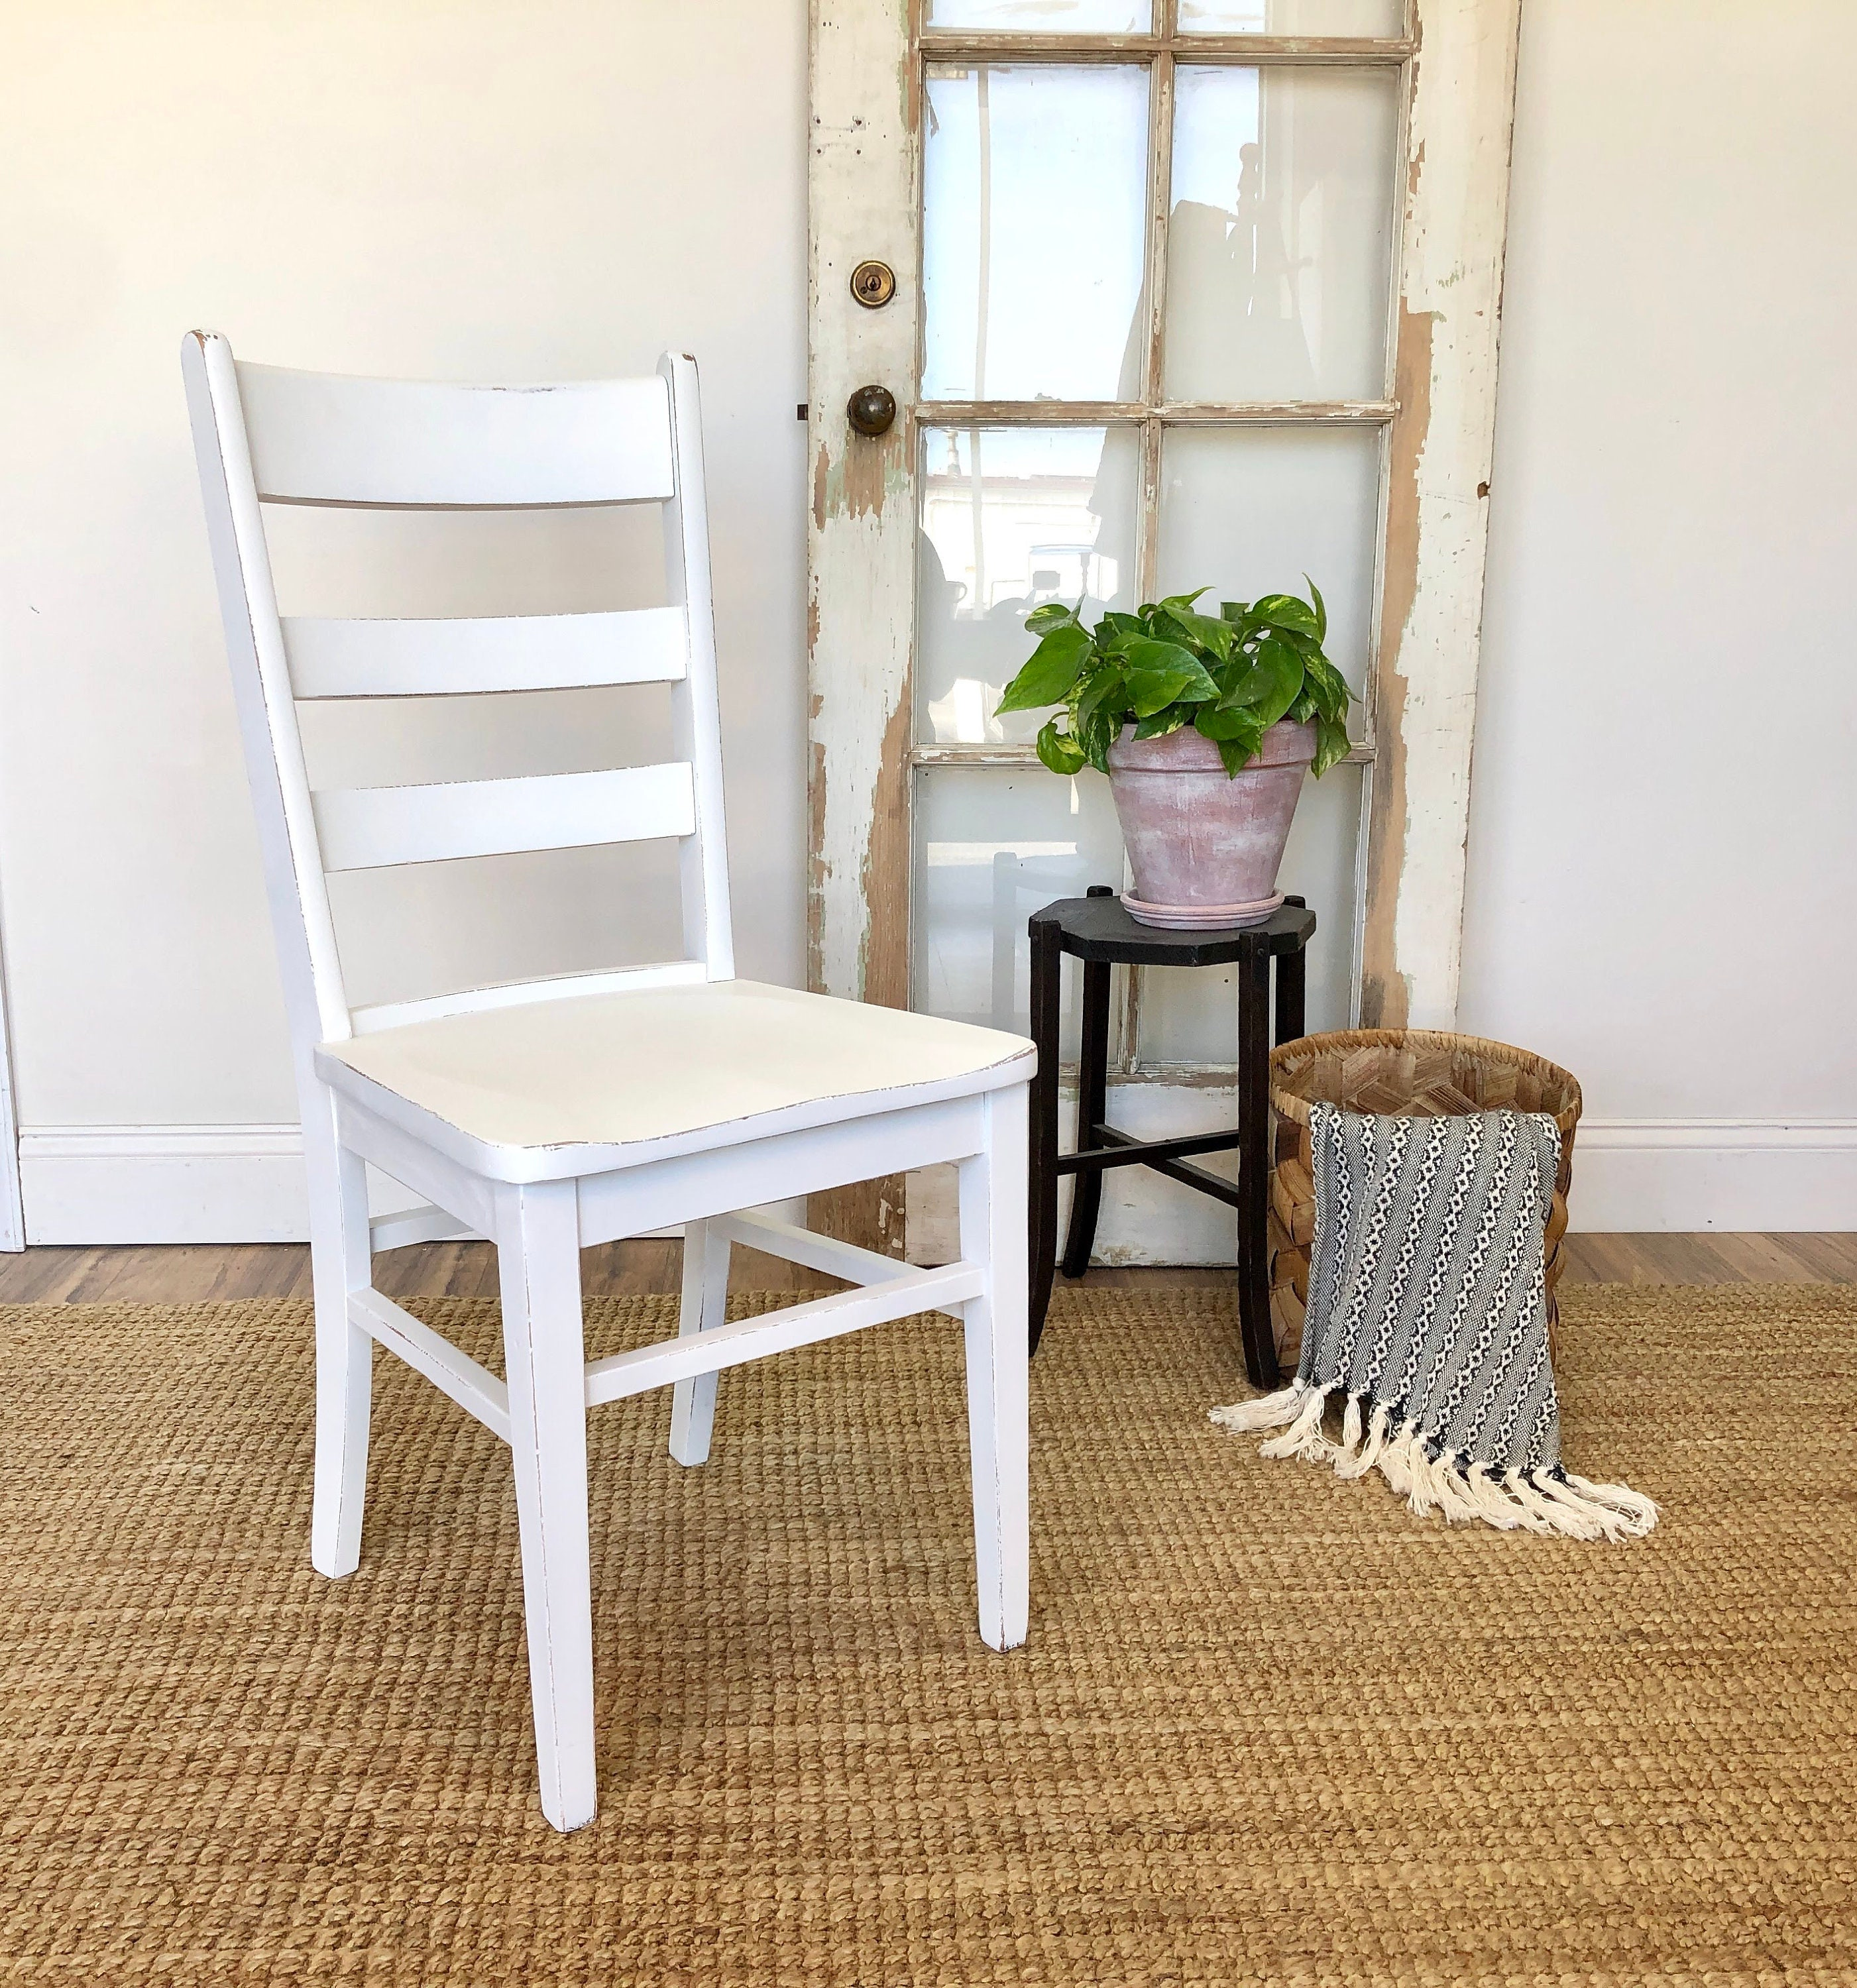 1 & Farmhouse Kitchen Chair - Country Chic Furniture